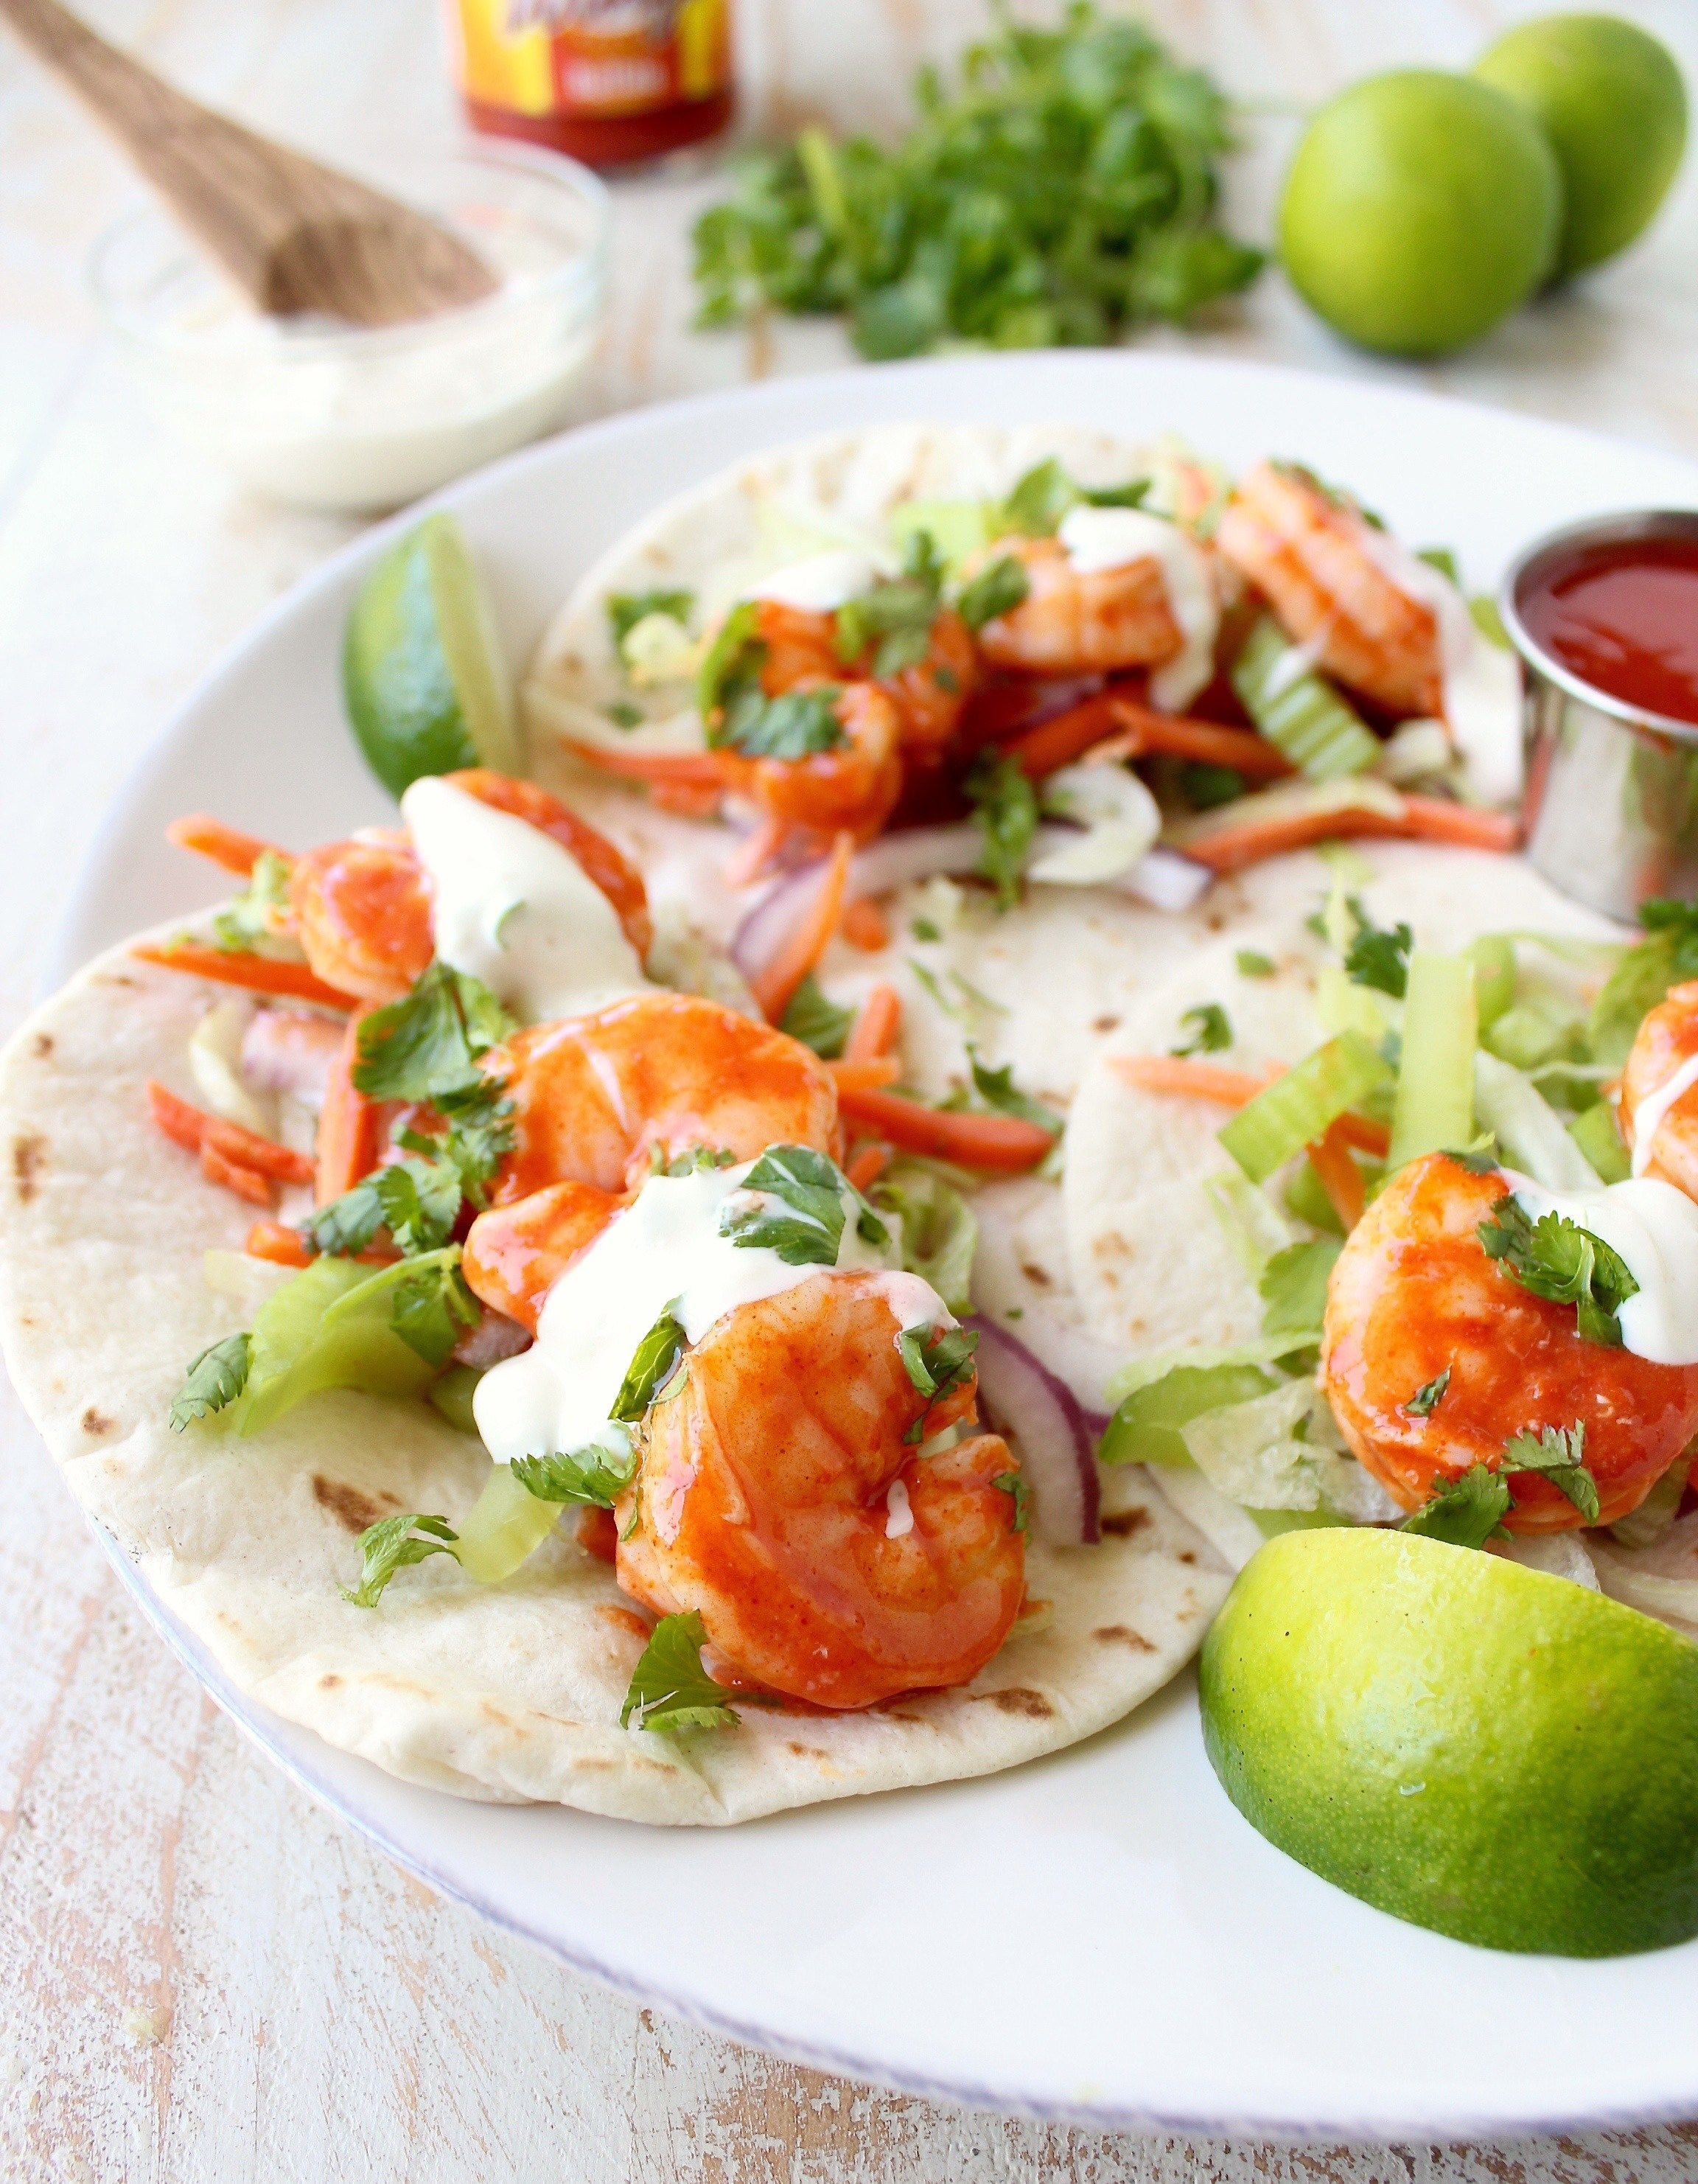 Buffalo Shrimp Tacos are an easy weeknight meal, made in just 15 minutes! They're also perfect for celebrating Taco Tuesday or Cinco De Mayo! #buffaloshrimp Buffalo Shrimp Tacos are an easy weeknight meal, made in just 15 minutes! They're also perfect for celebrating Taco Tuesday or Cinco De Mayo! #buffaloshrimp